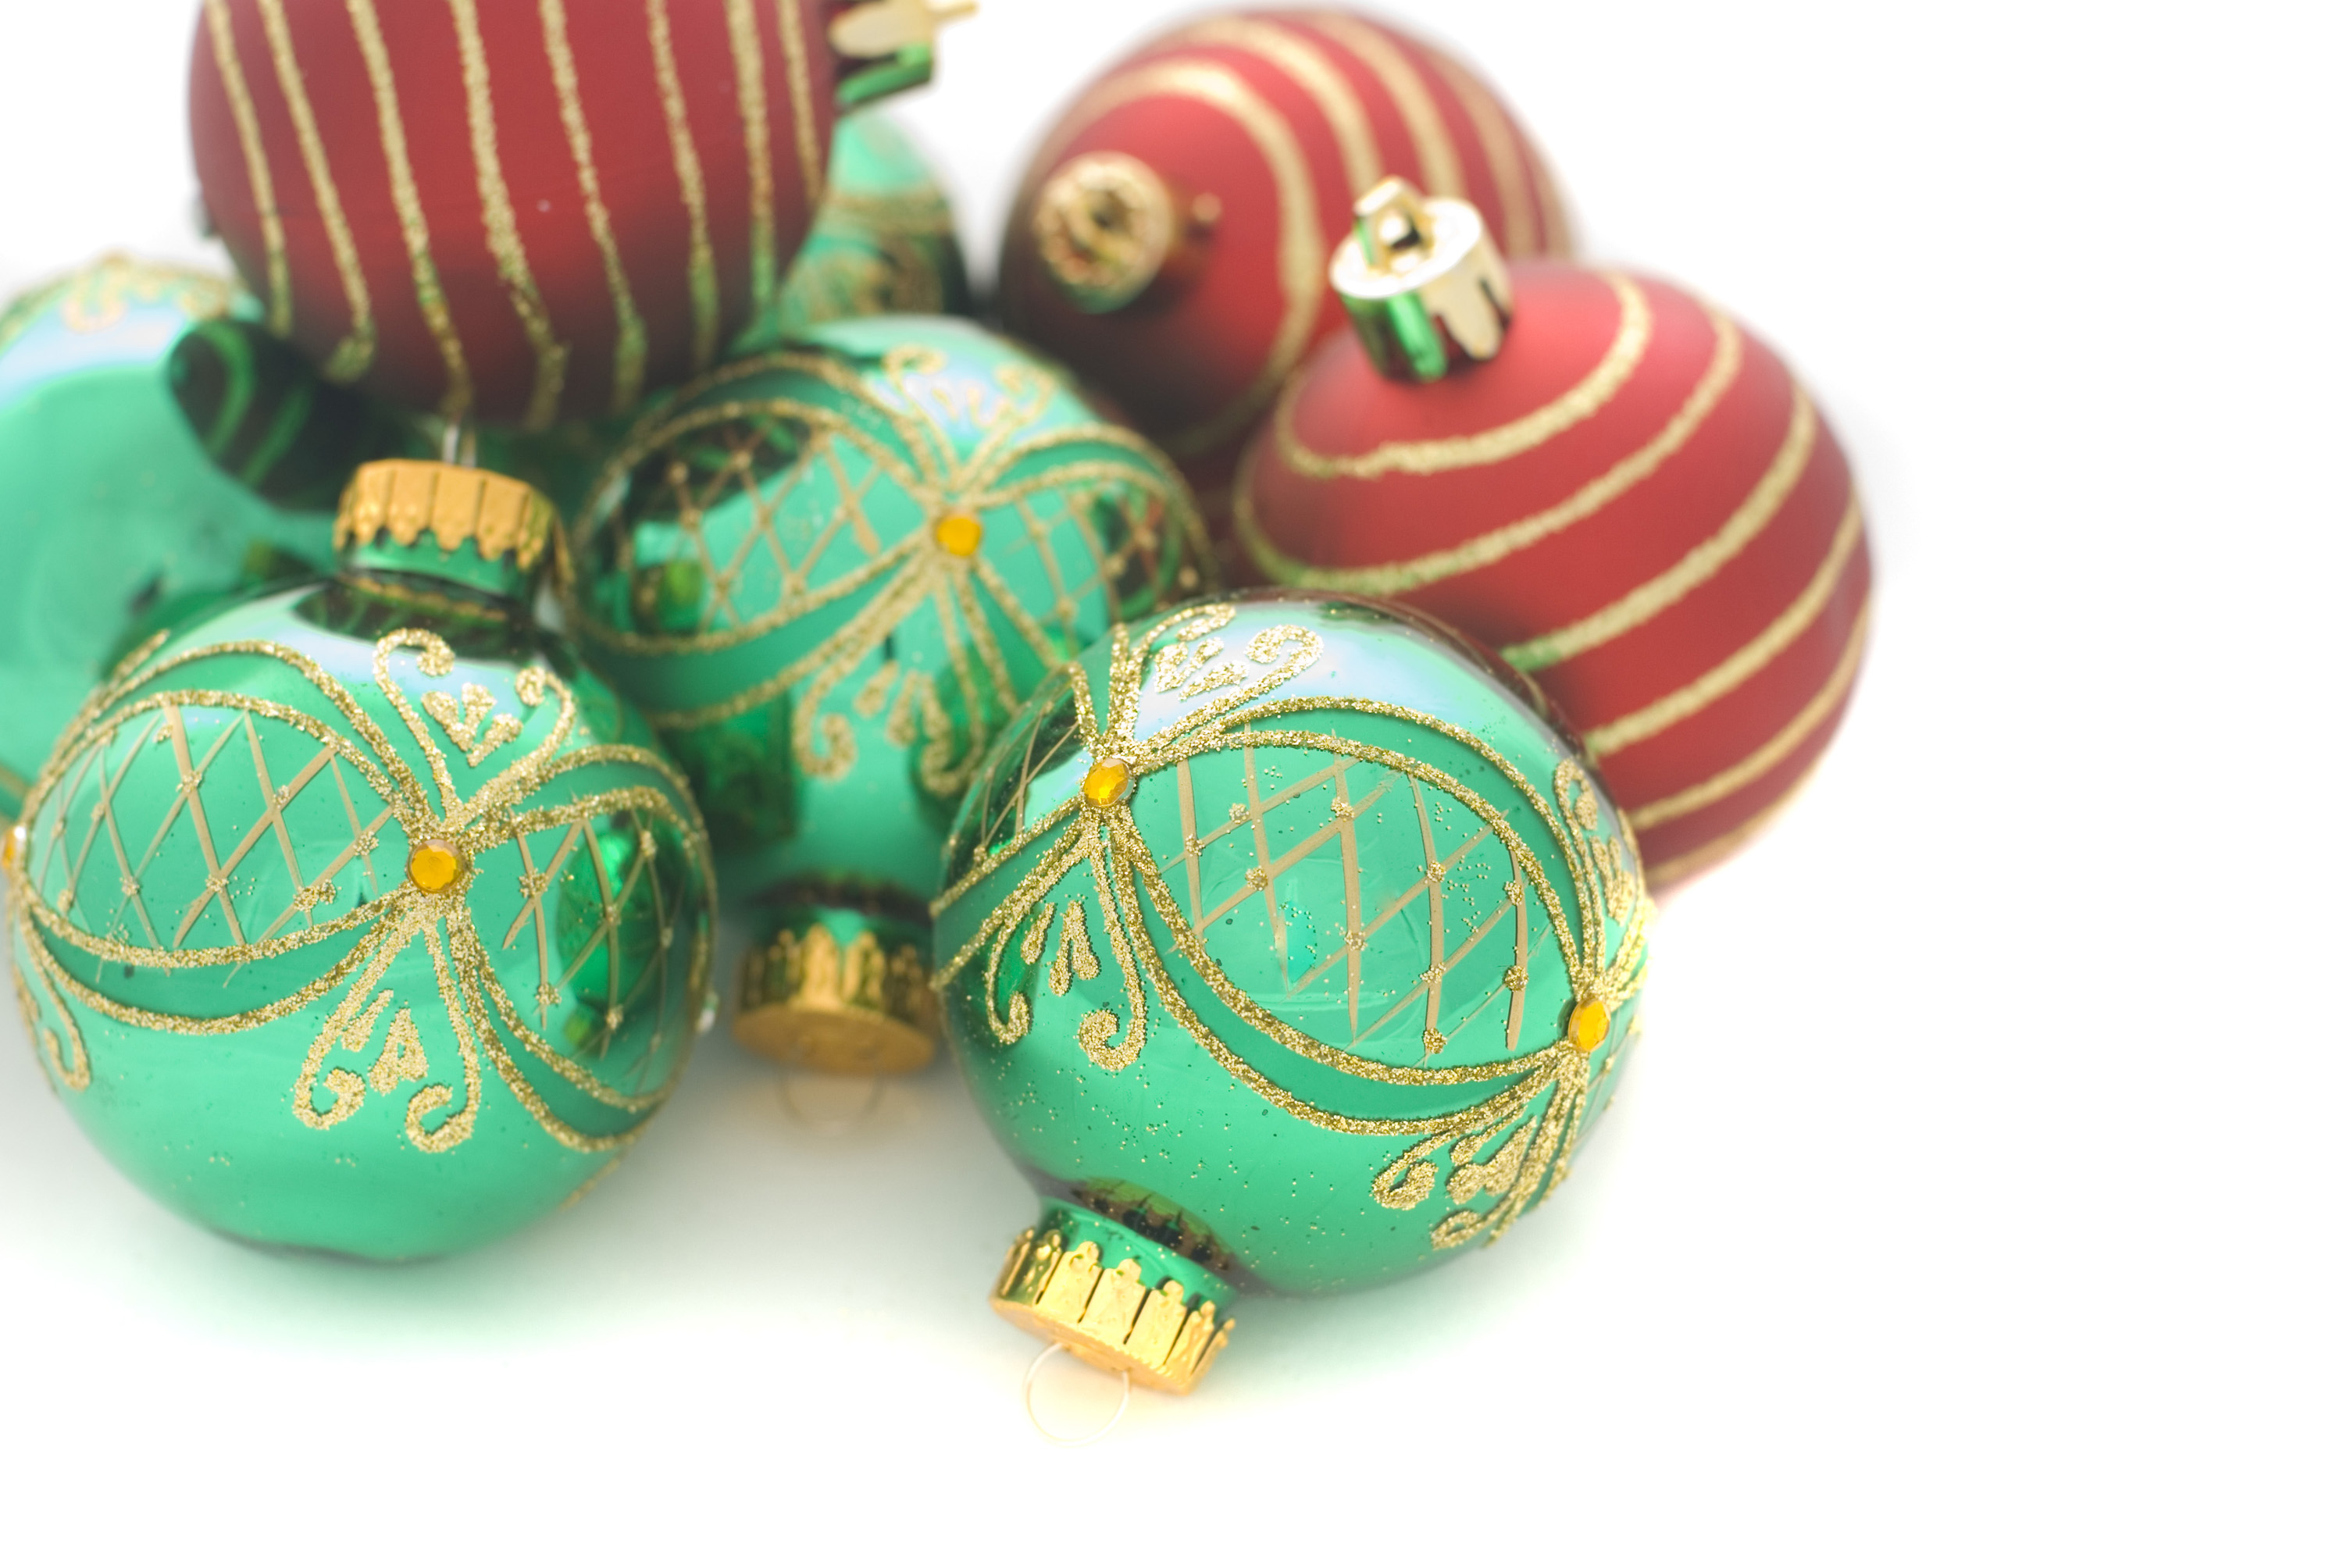 A Pile Of Red And Green Christmas Tree Ornaments On A Clean White Background